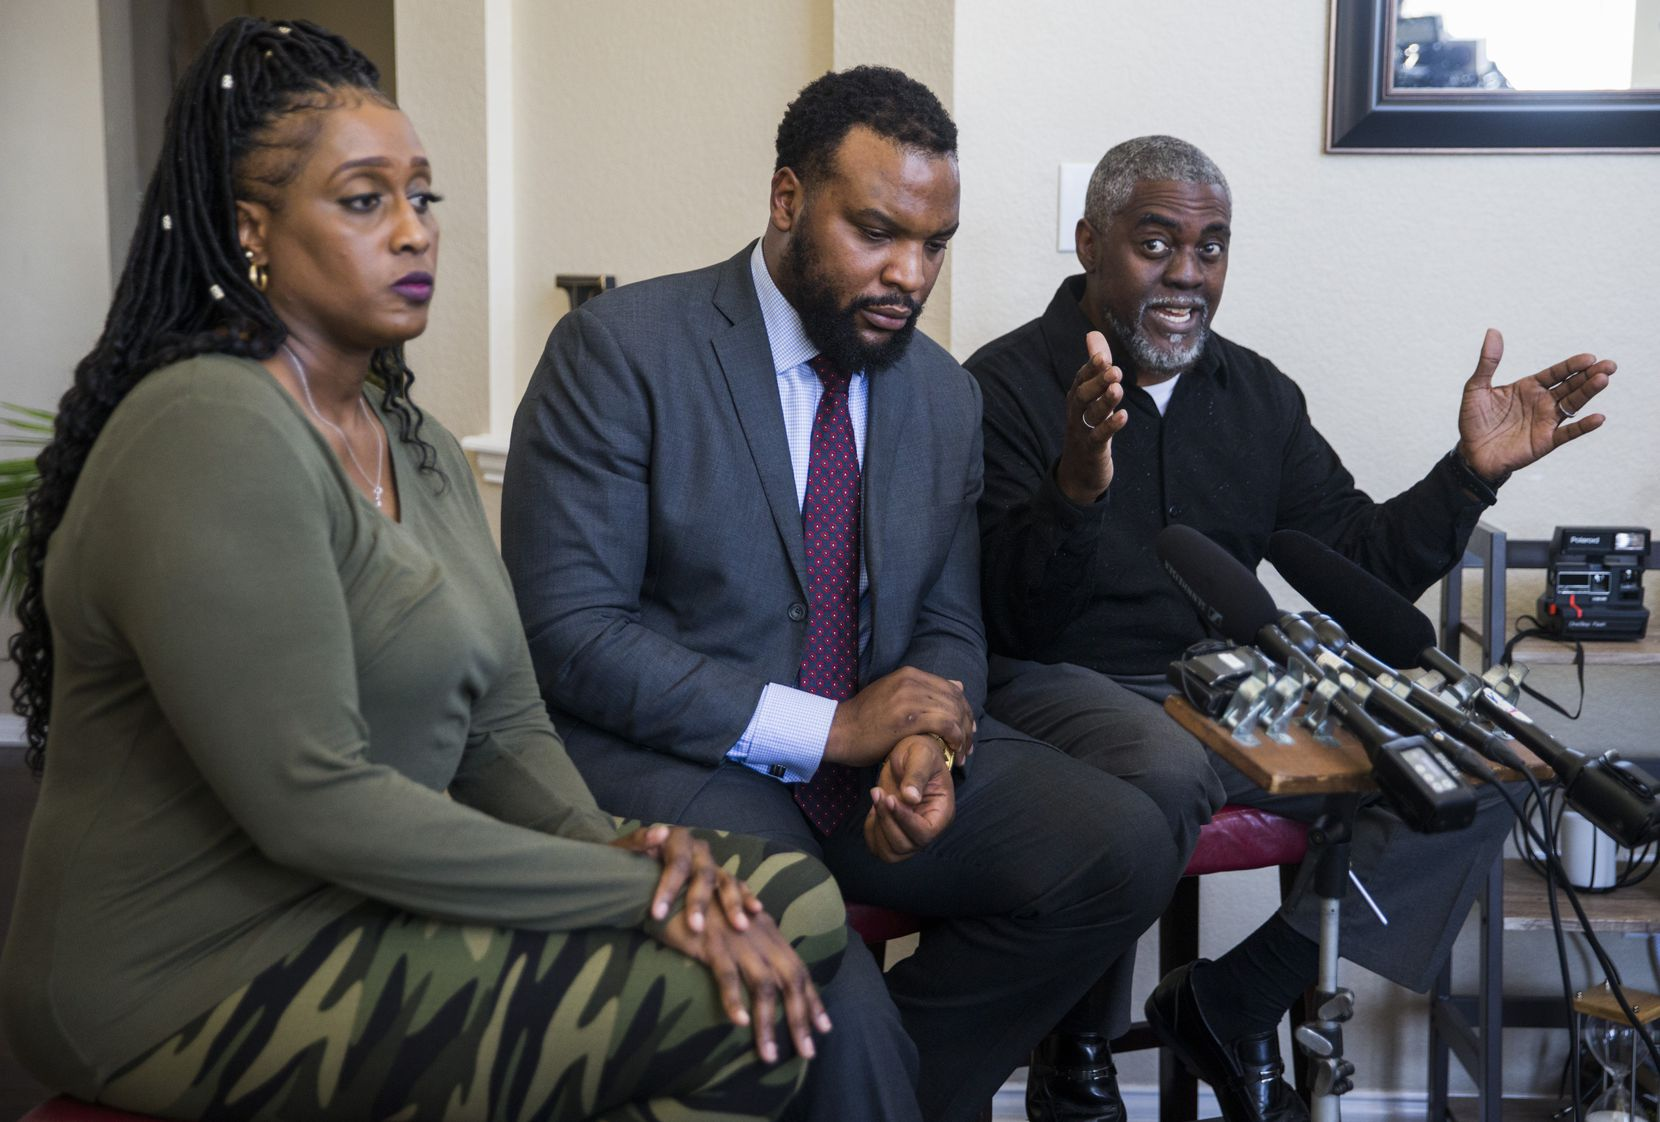 Attorney Lee Merritt (center) and Darius Tarver's parents, Froncella Reece and Kevin Tarver, spoke to reporters at Merritt's home in March 2020.